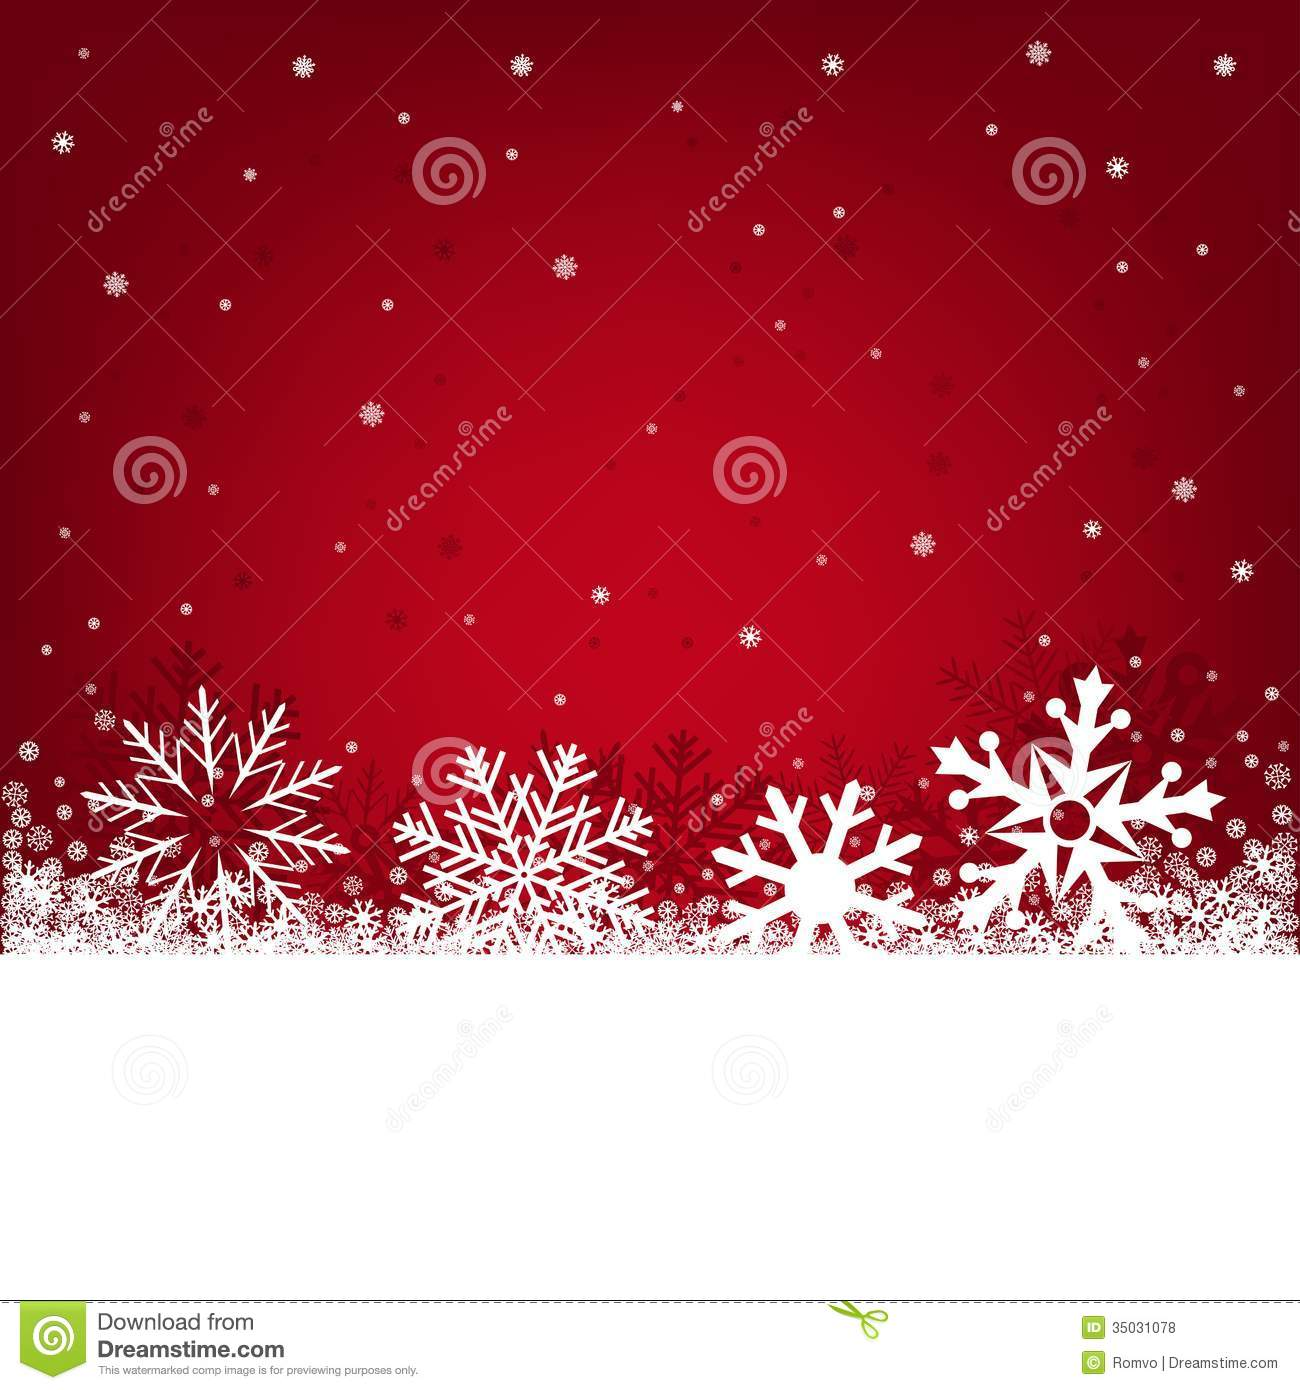 Free Christmas Falling Snow Wallpaper Christmas Red Background Royalty Free Stock Photos Image